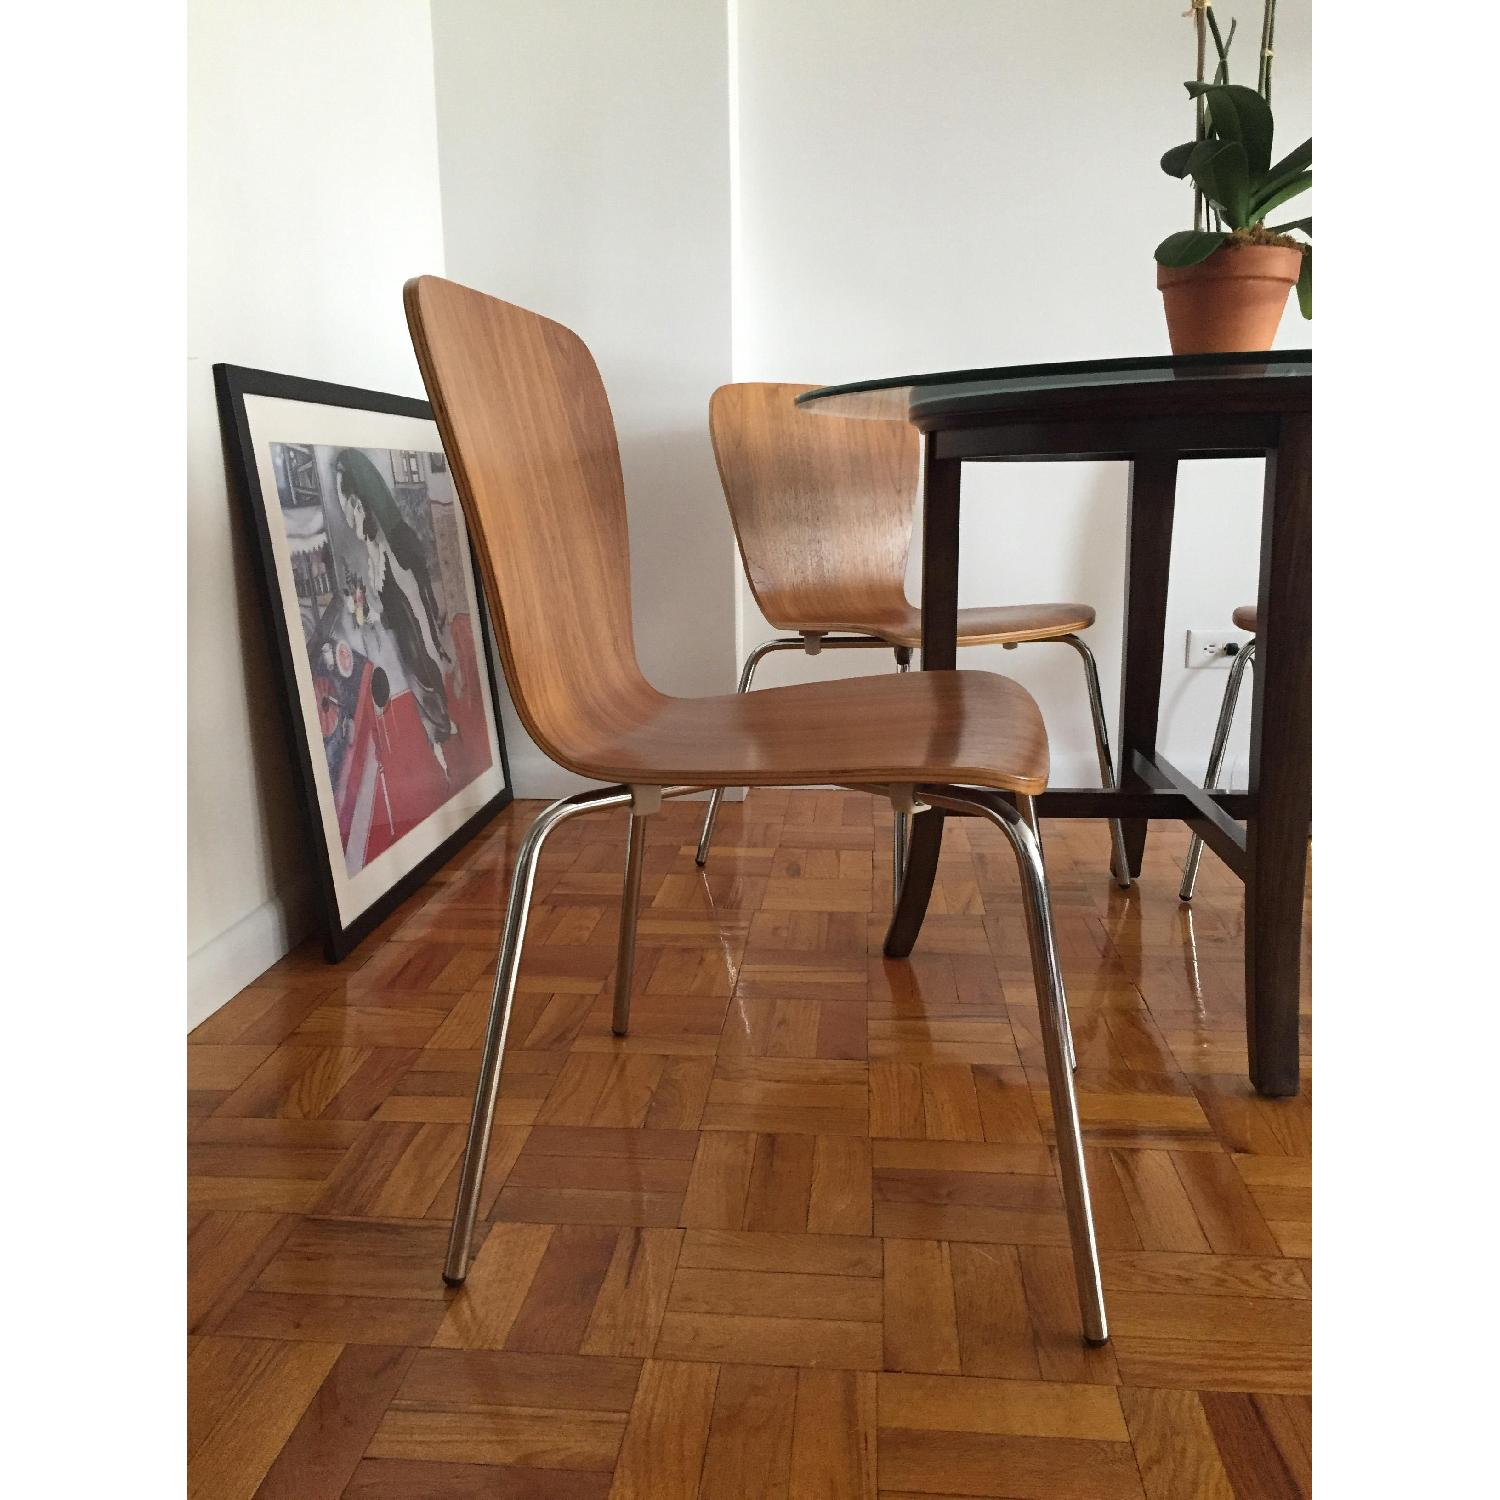 Crate & Barrel Modern Dining Chairs in Walnut Wood - image-1